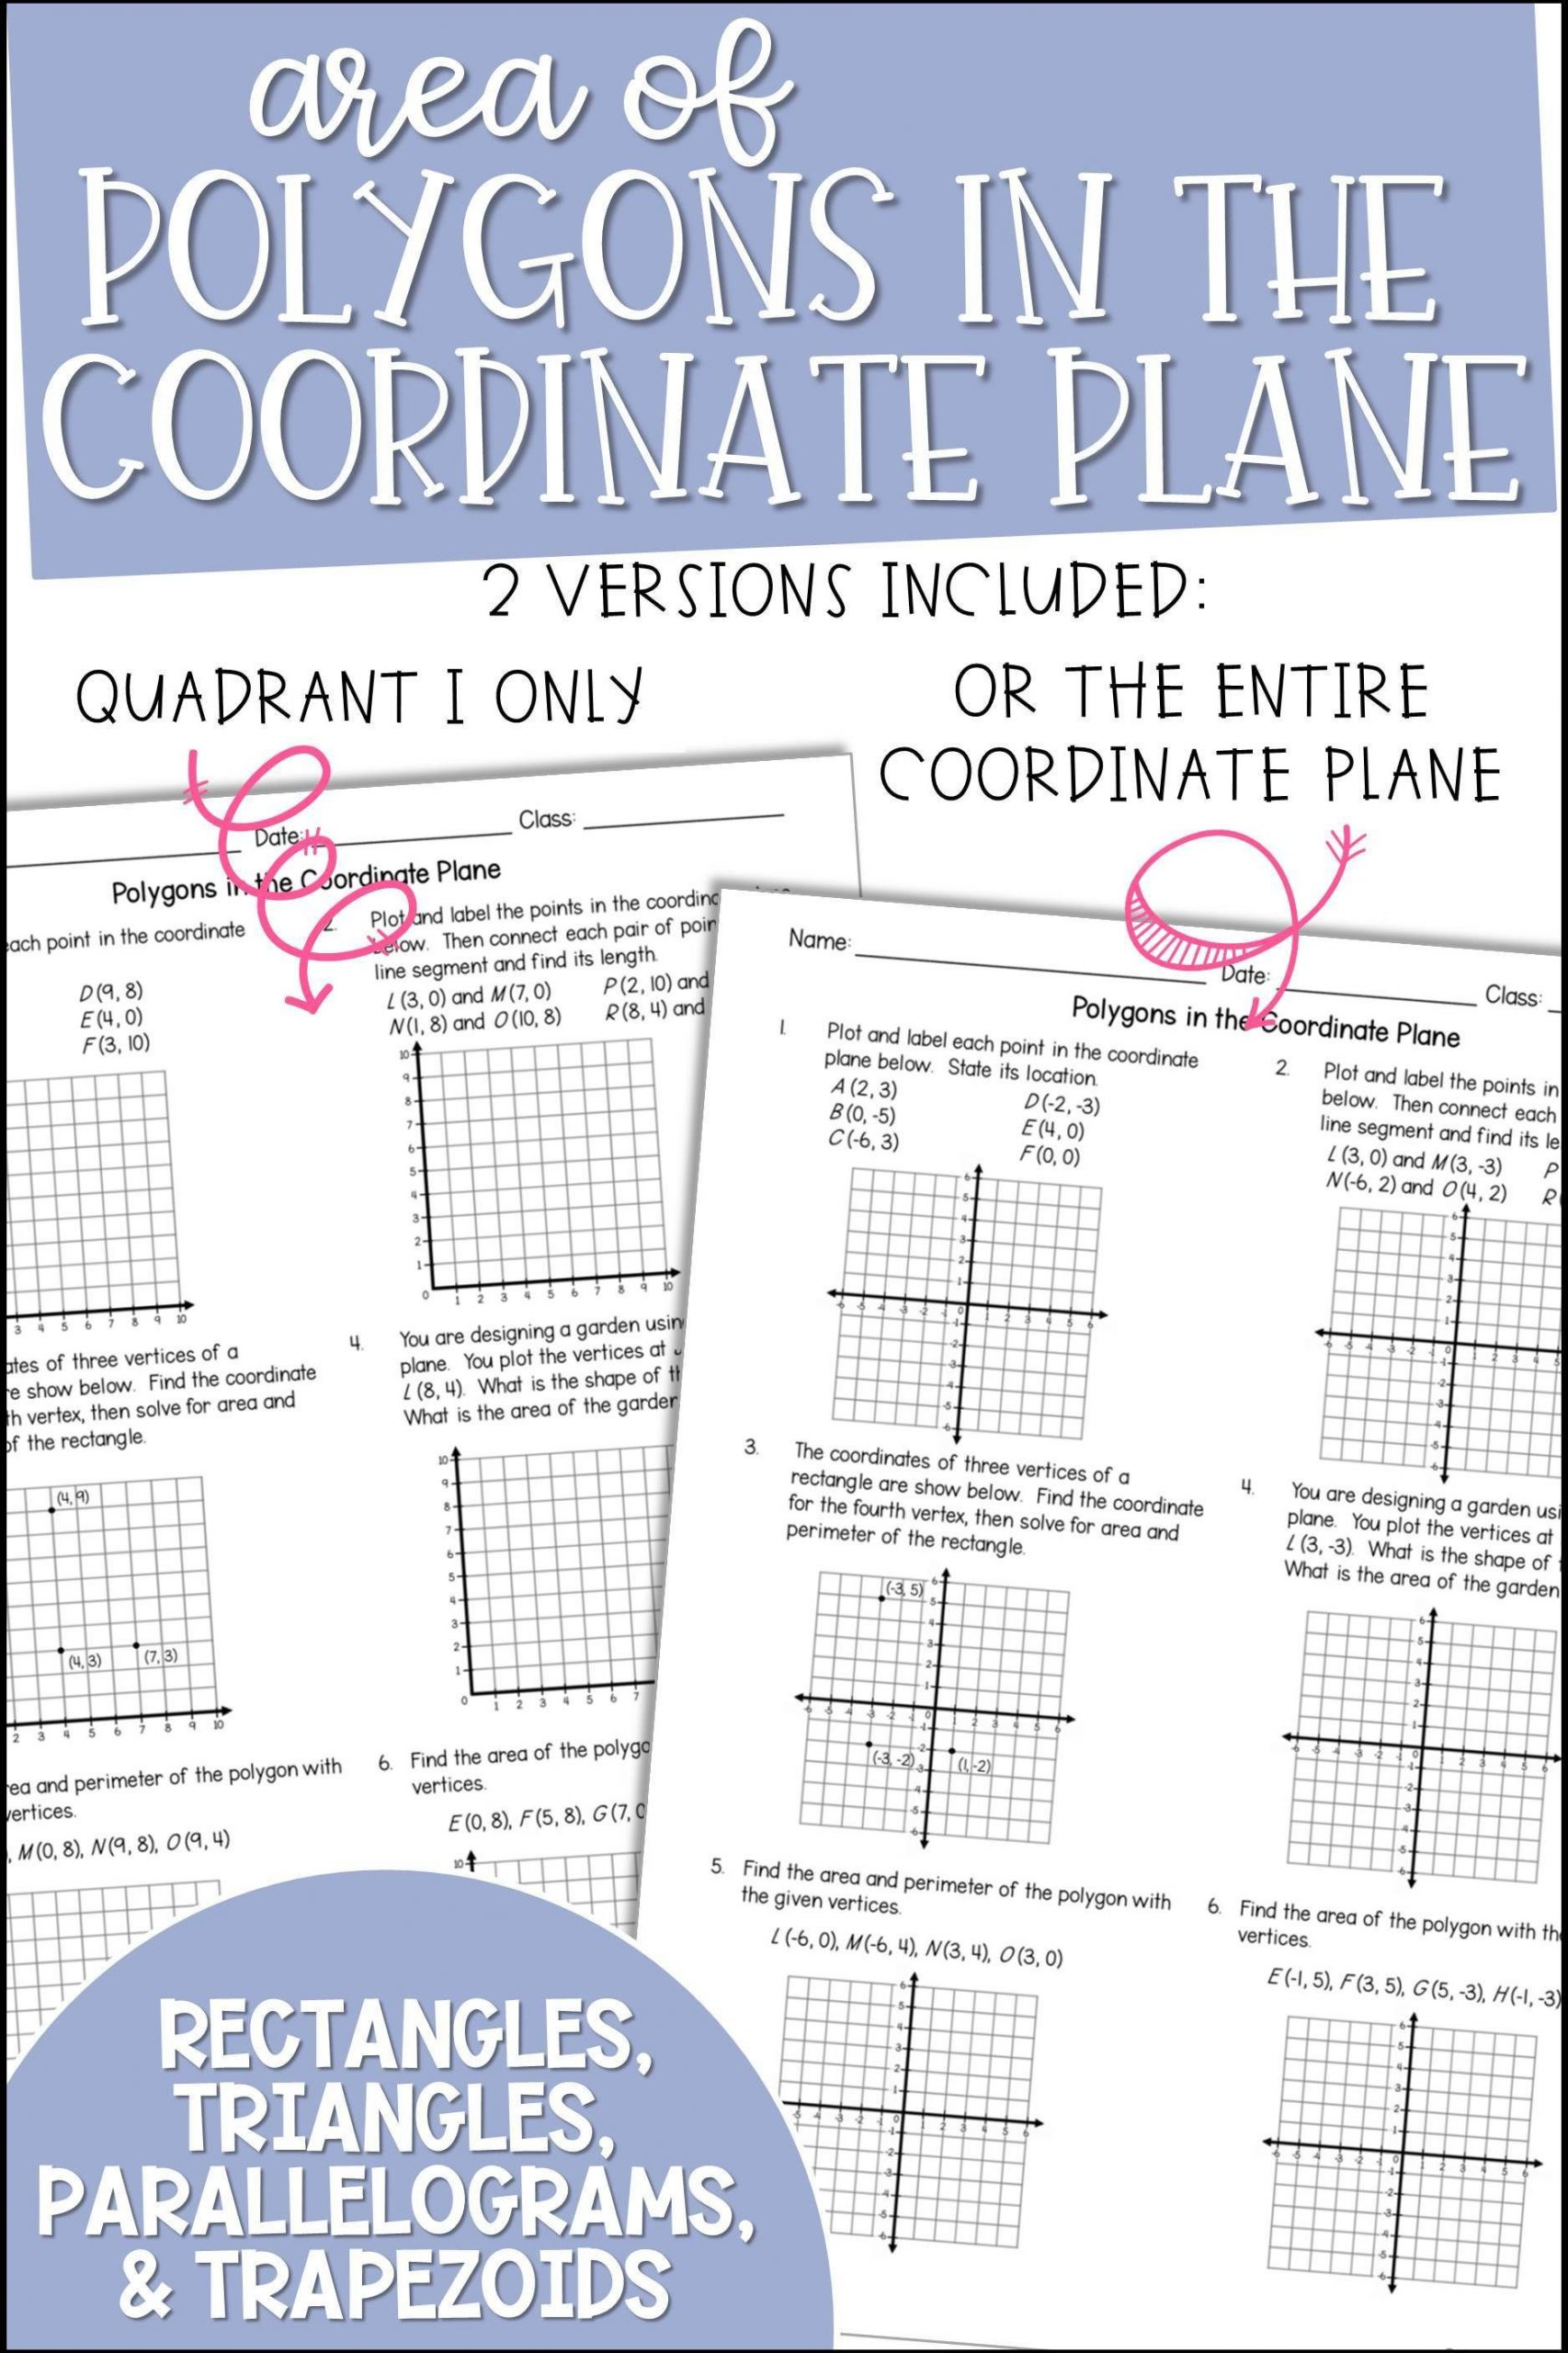 Coordinate Grid Worksheets 6th Grade area Of Polygons In the Coordinate Plane